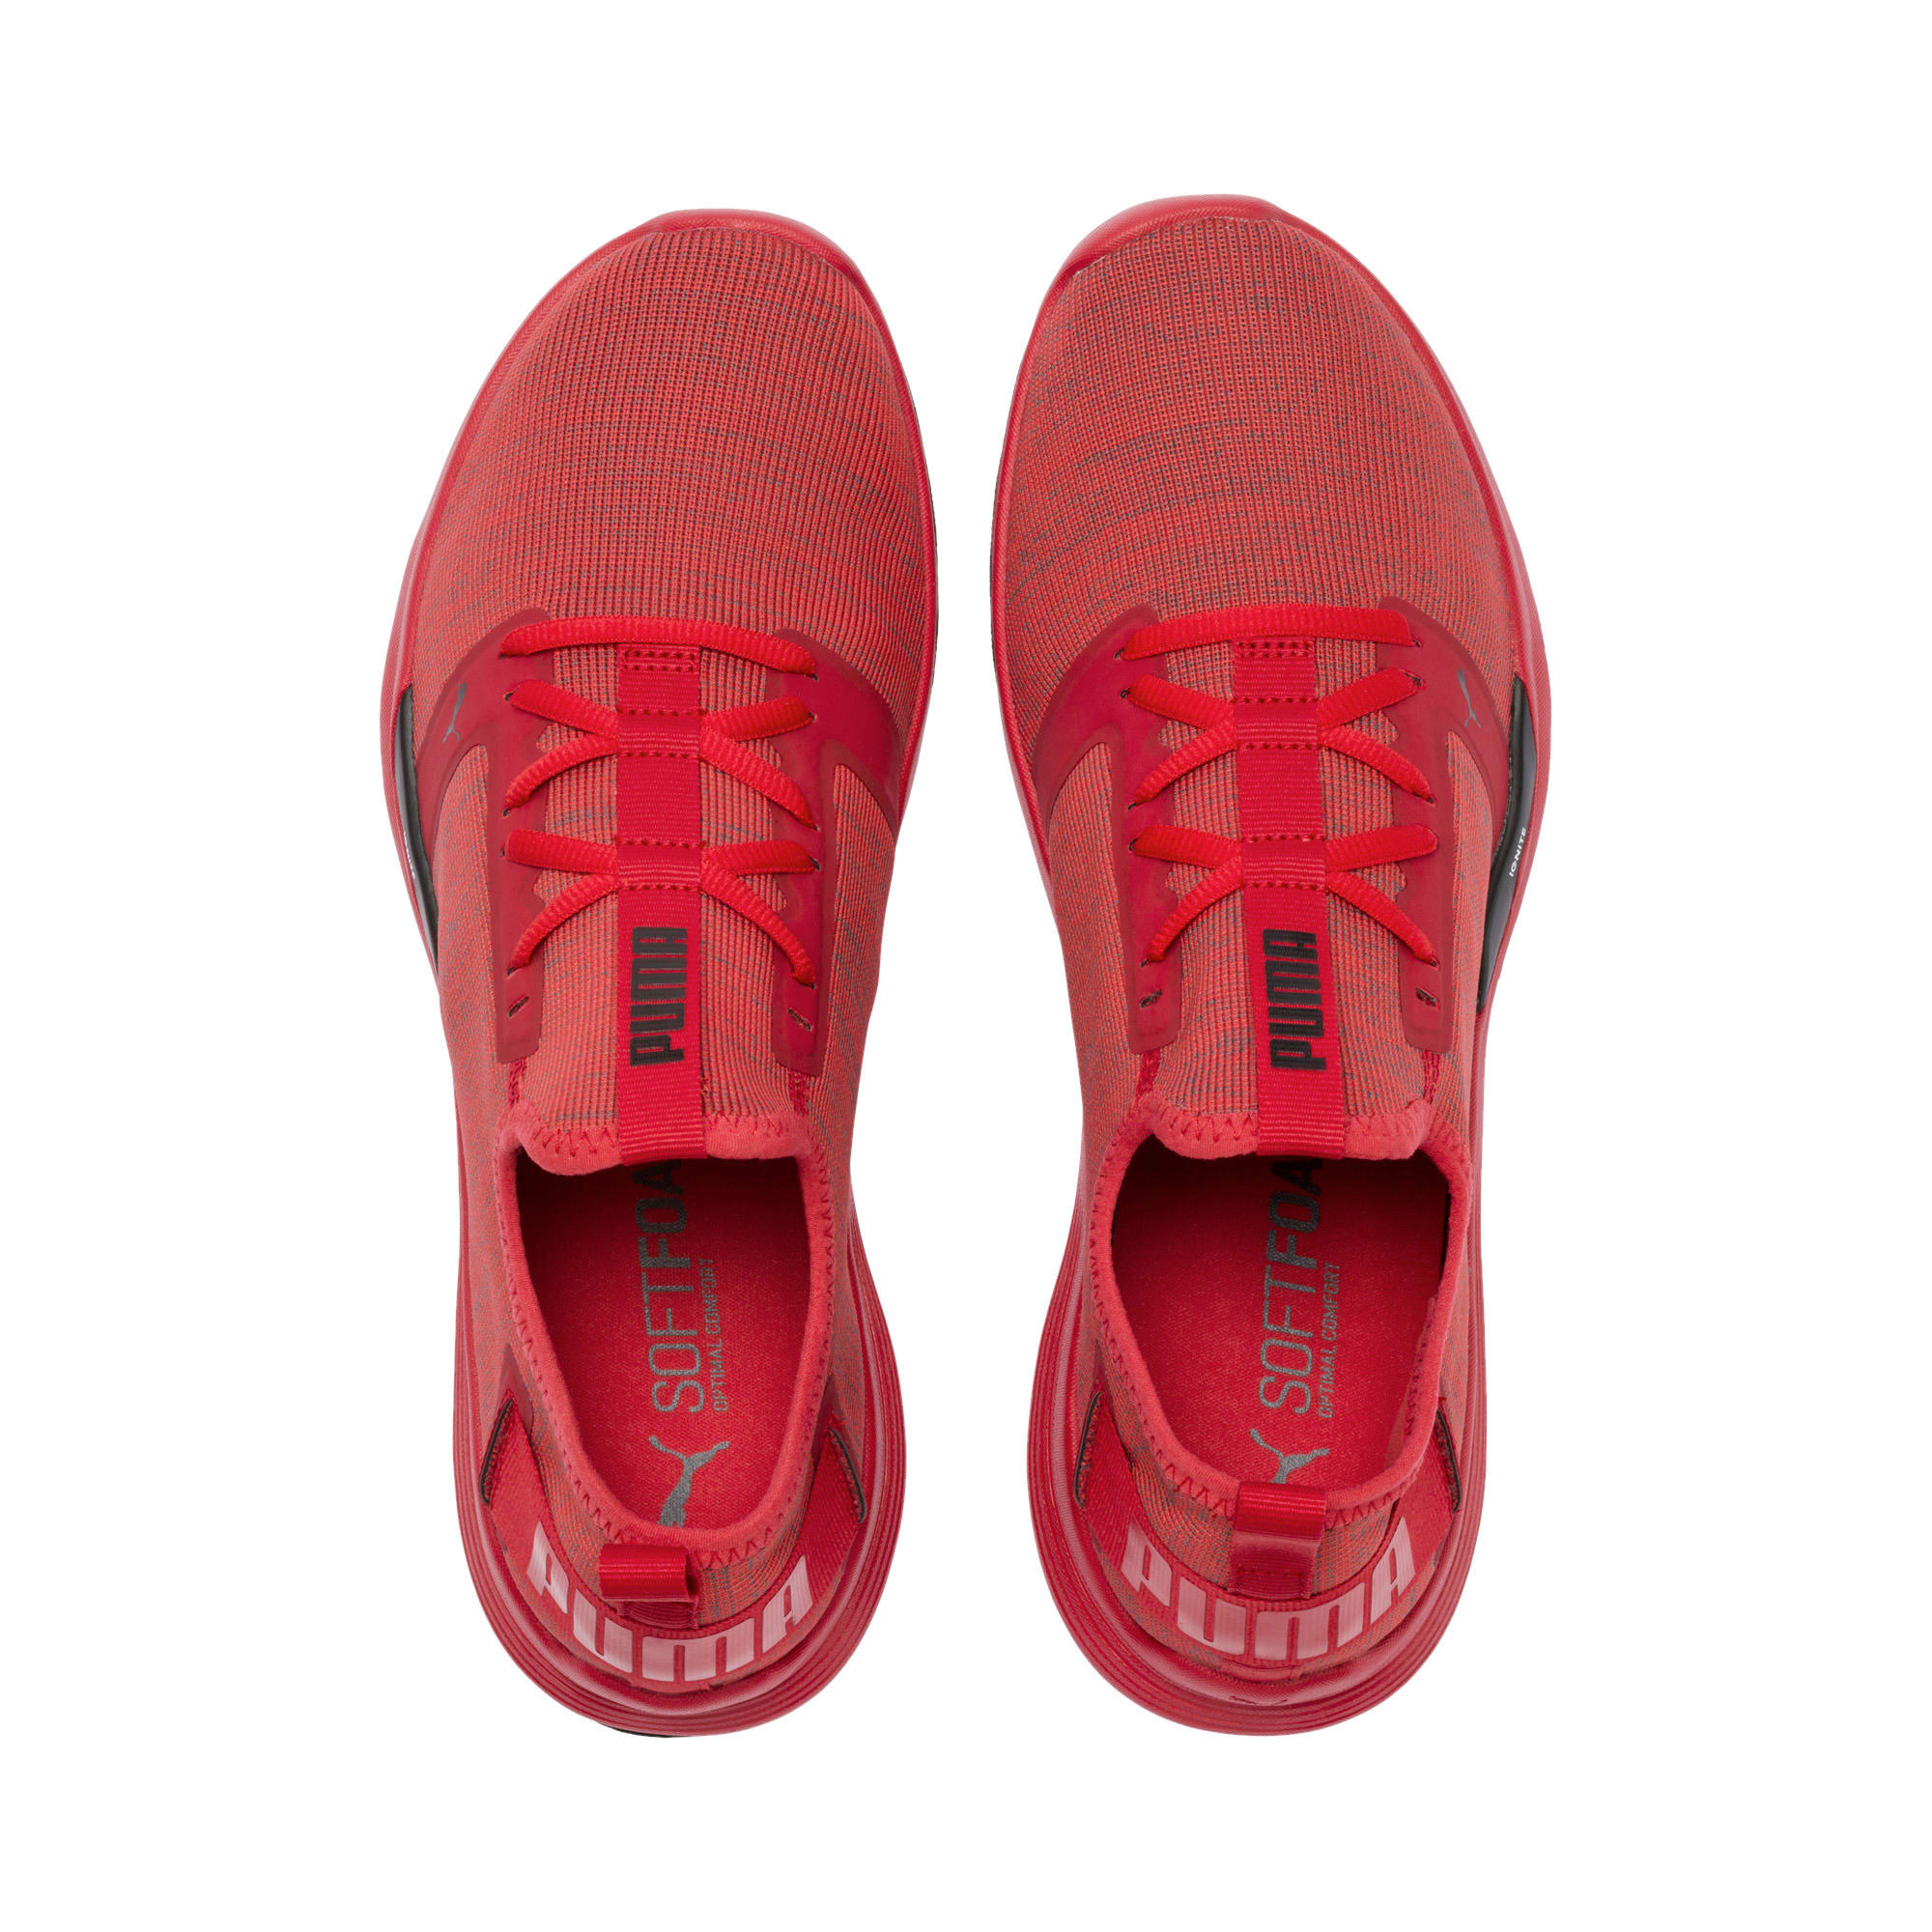 Thumbnail 8 of IGNITE Contender Knit Men's Running Shoes, Ribbon Red-Puma Black, medium-IND